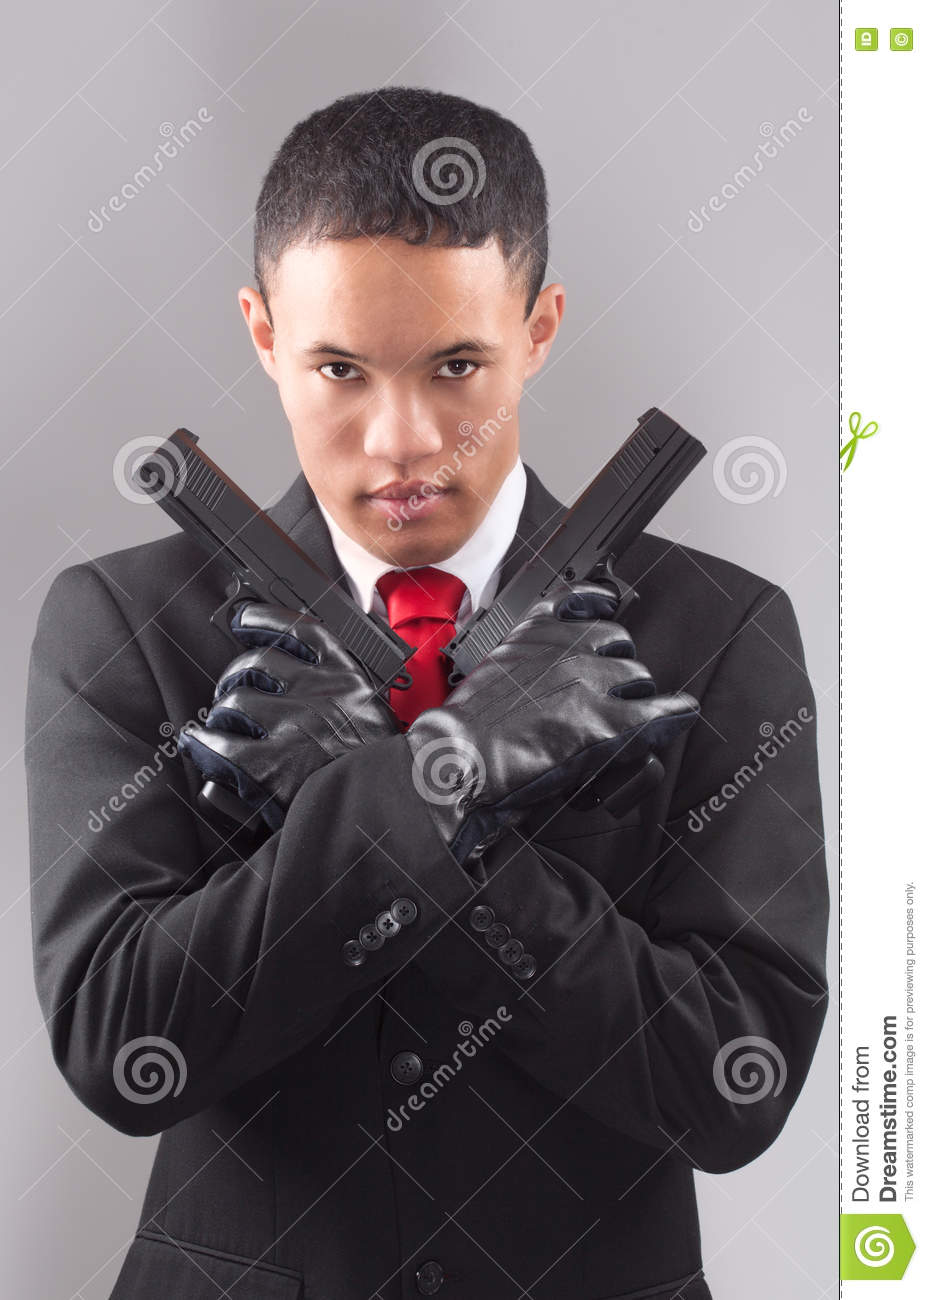 asian man in suit and tie with guns stock image image